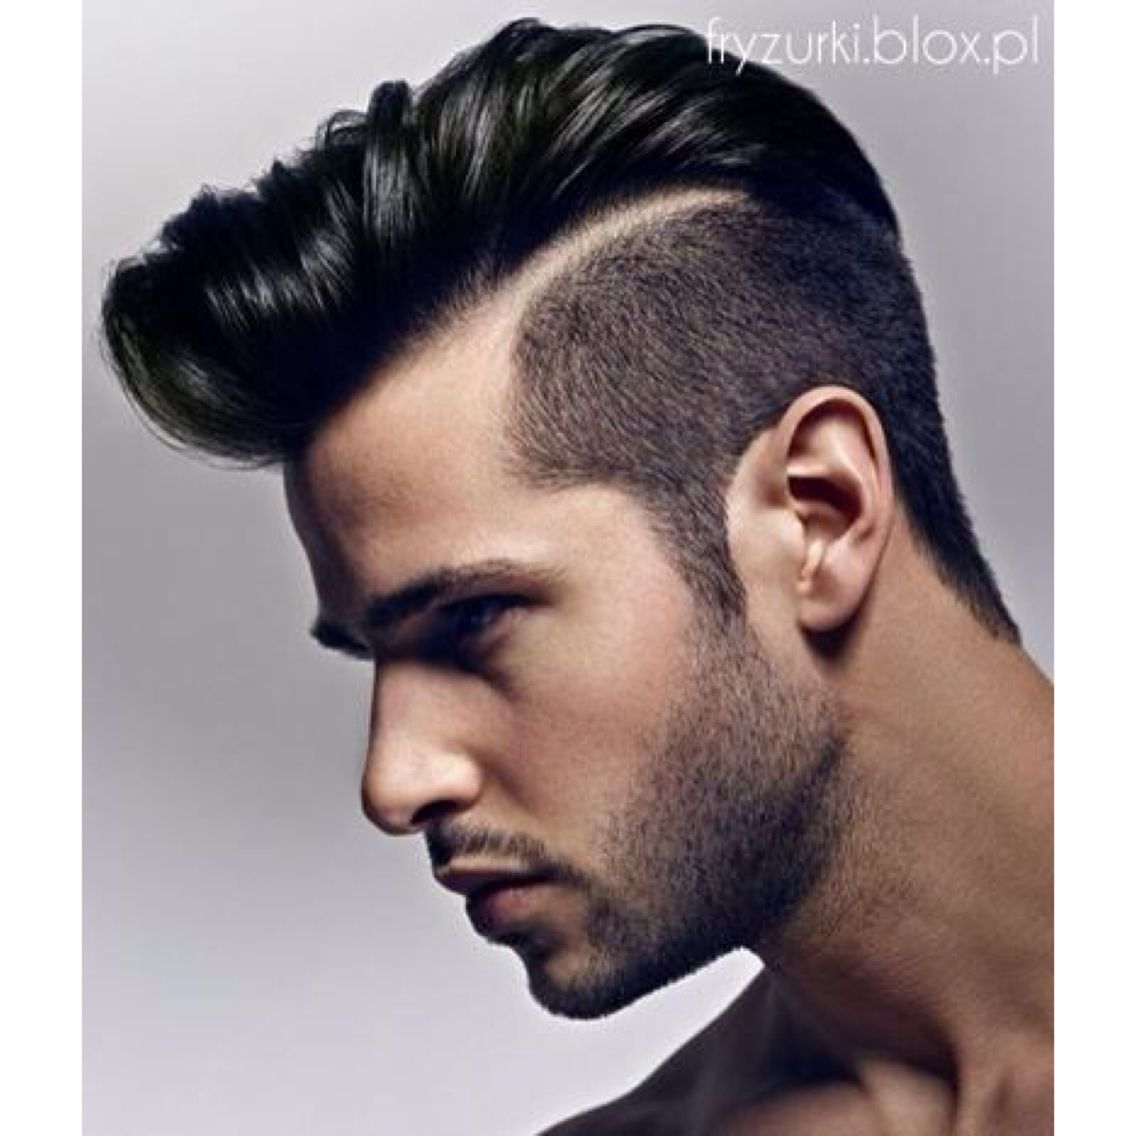 Mens haircut chart ol   hair cuts  pinterest  ol hairstyle men and haircuts